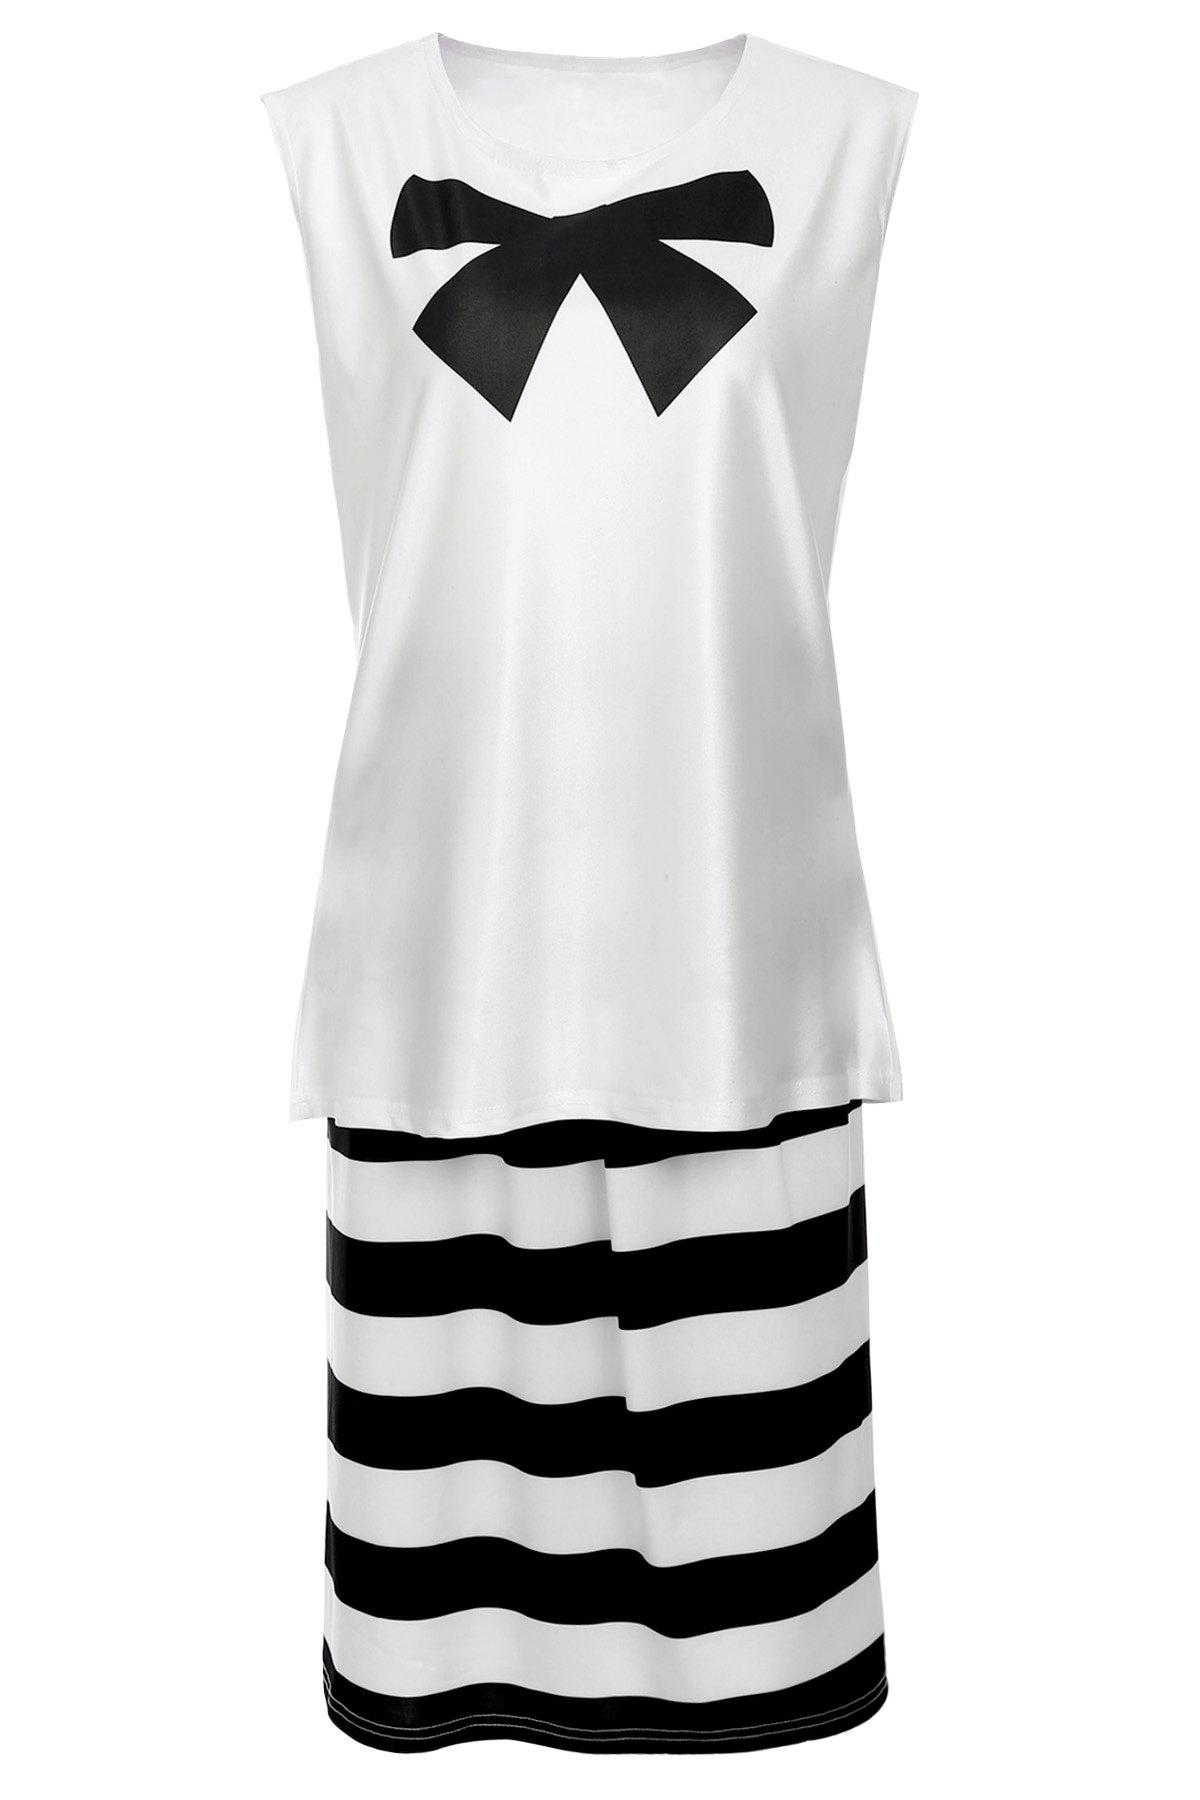 Attractive Sleeveless Bowknot Blouse and Striped Skirt Twinset For Women